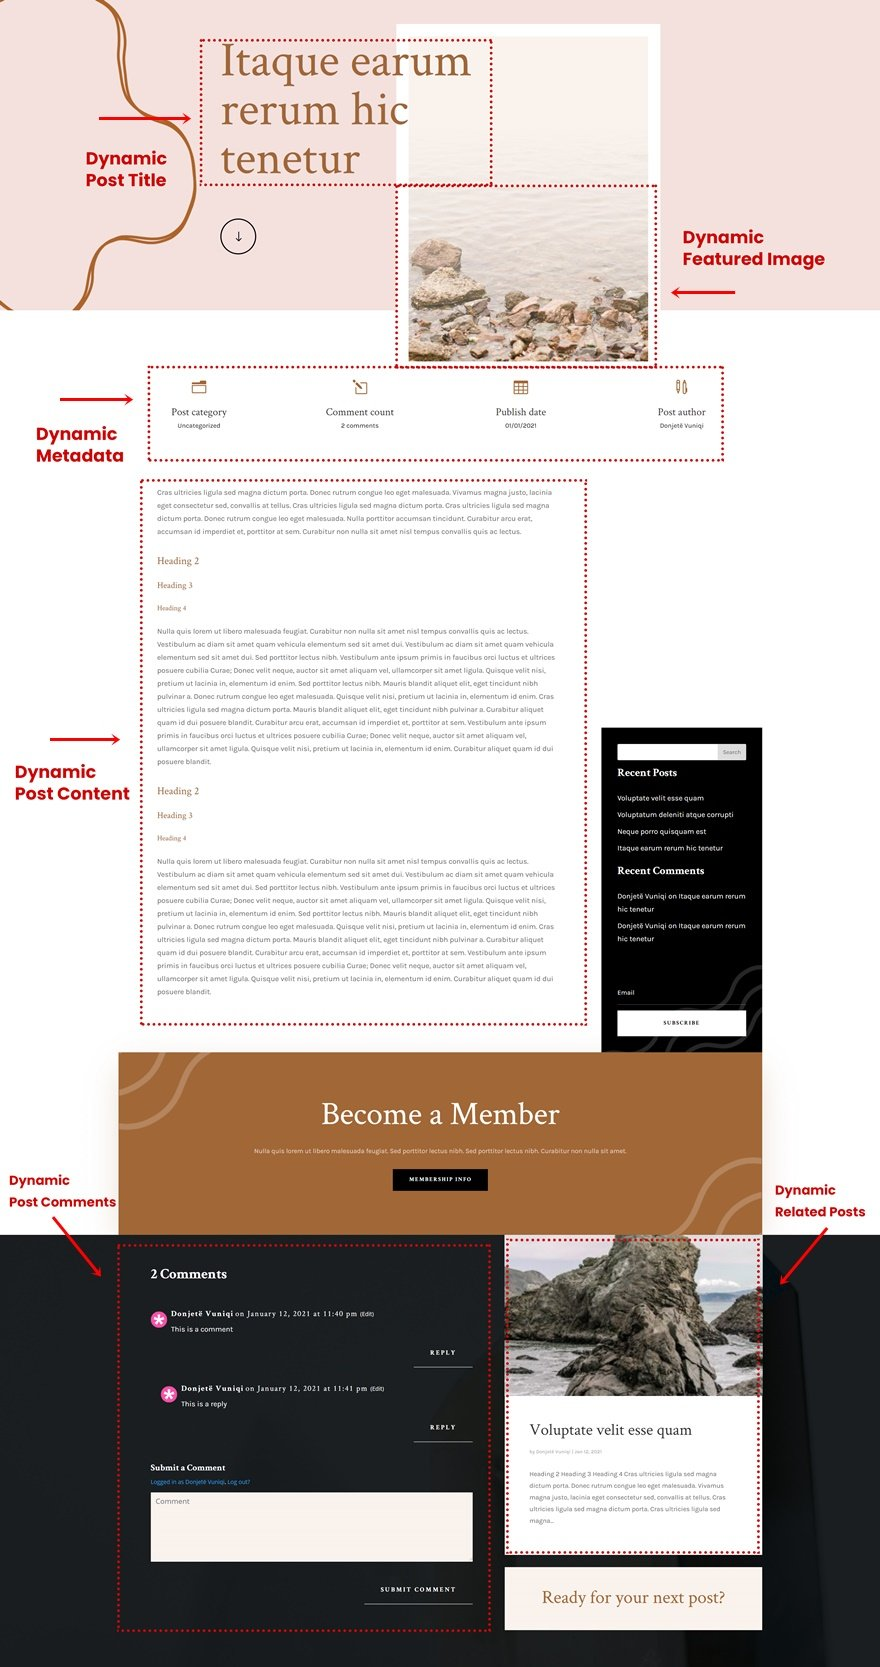 download-a-free-blog-post-template-for-divis-meditation-center-layout-pack-6 Download a FREE Blog Post Template for Divi's Meditation Center Layout Pack